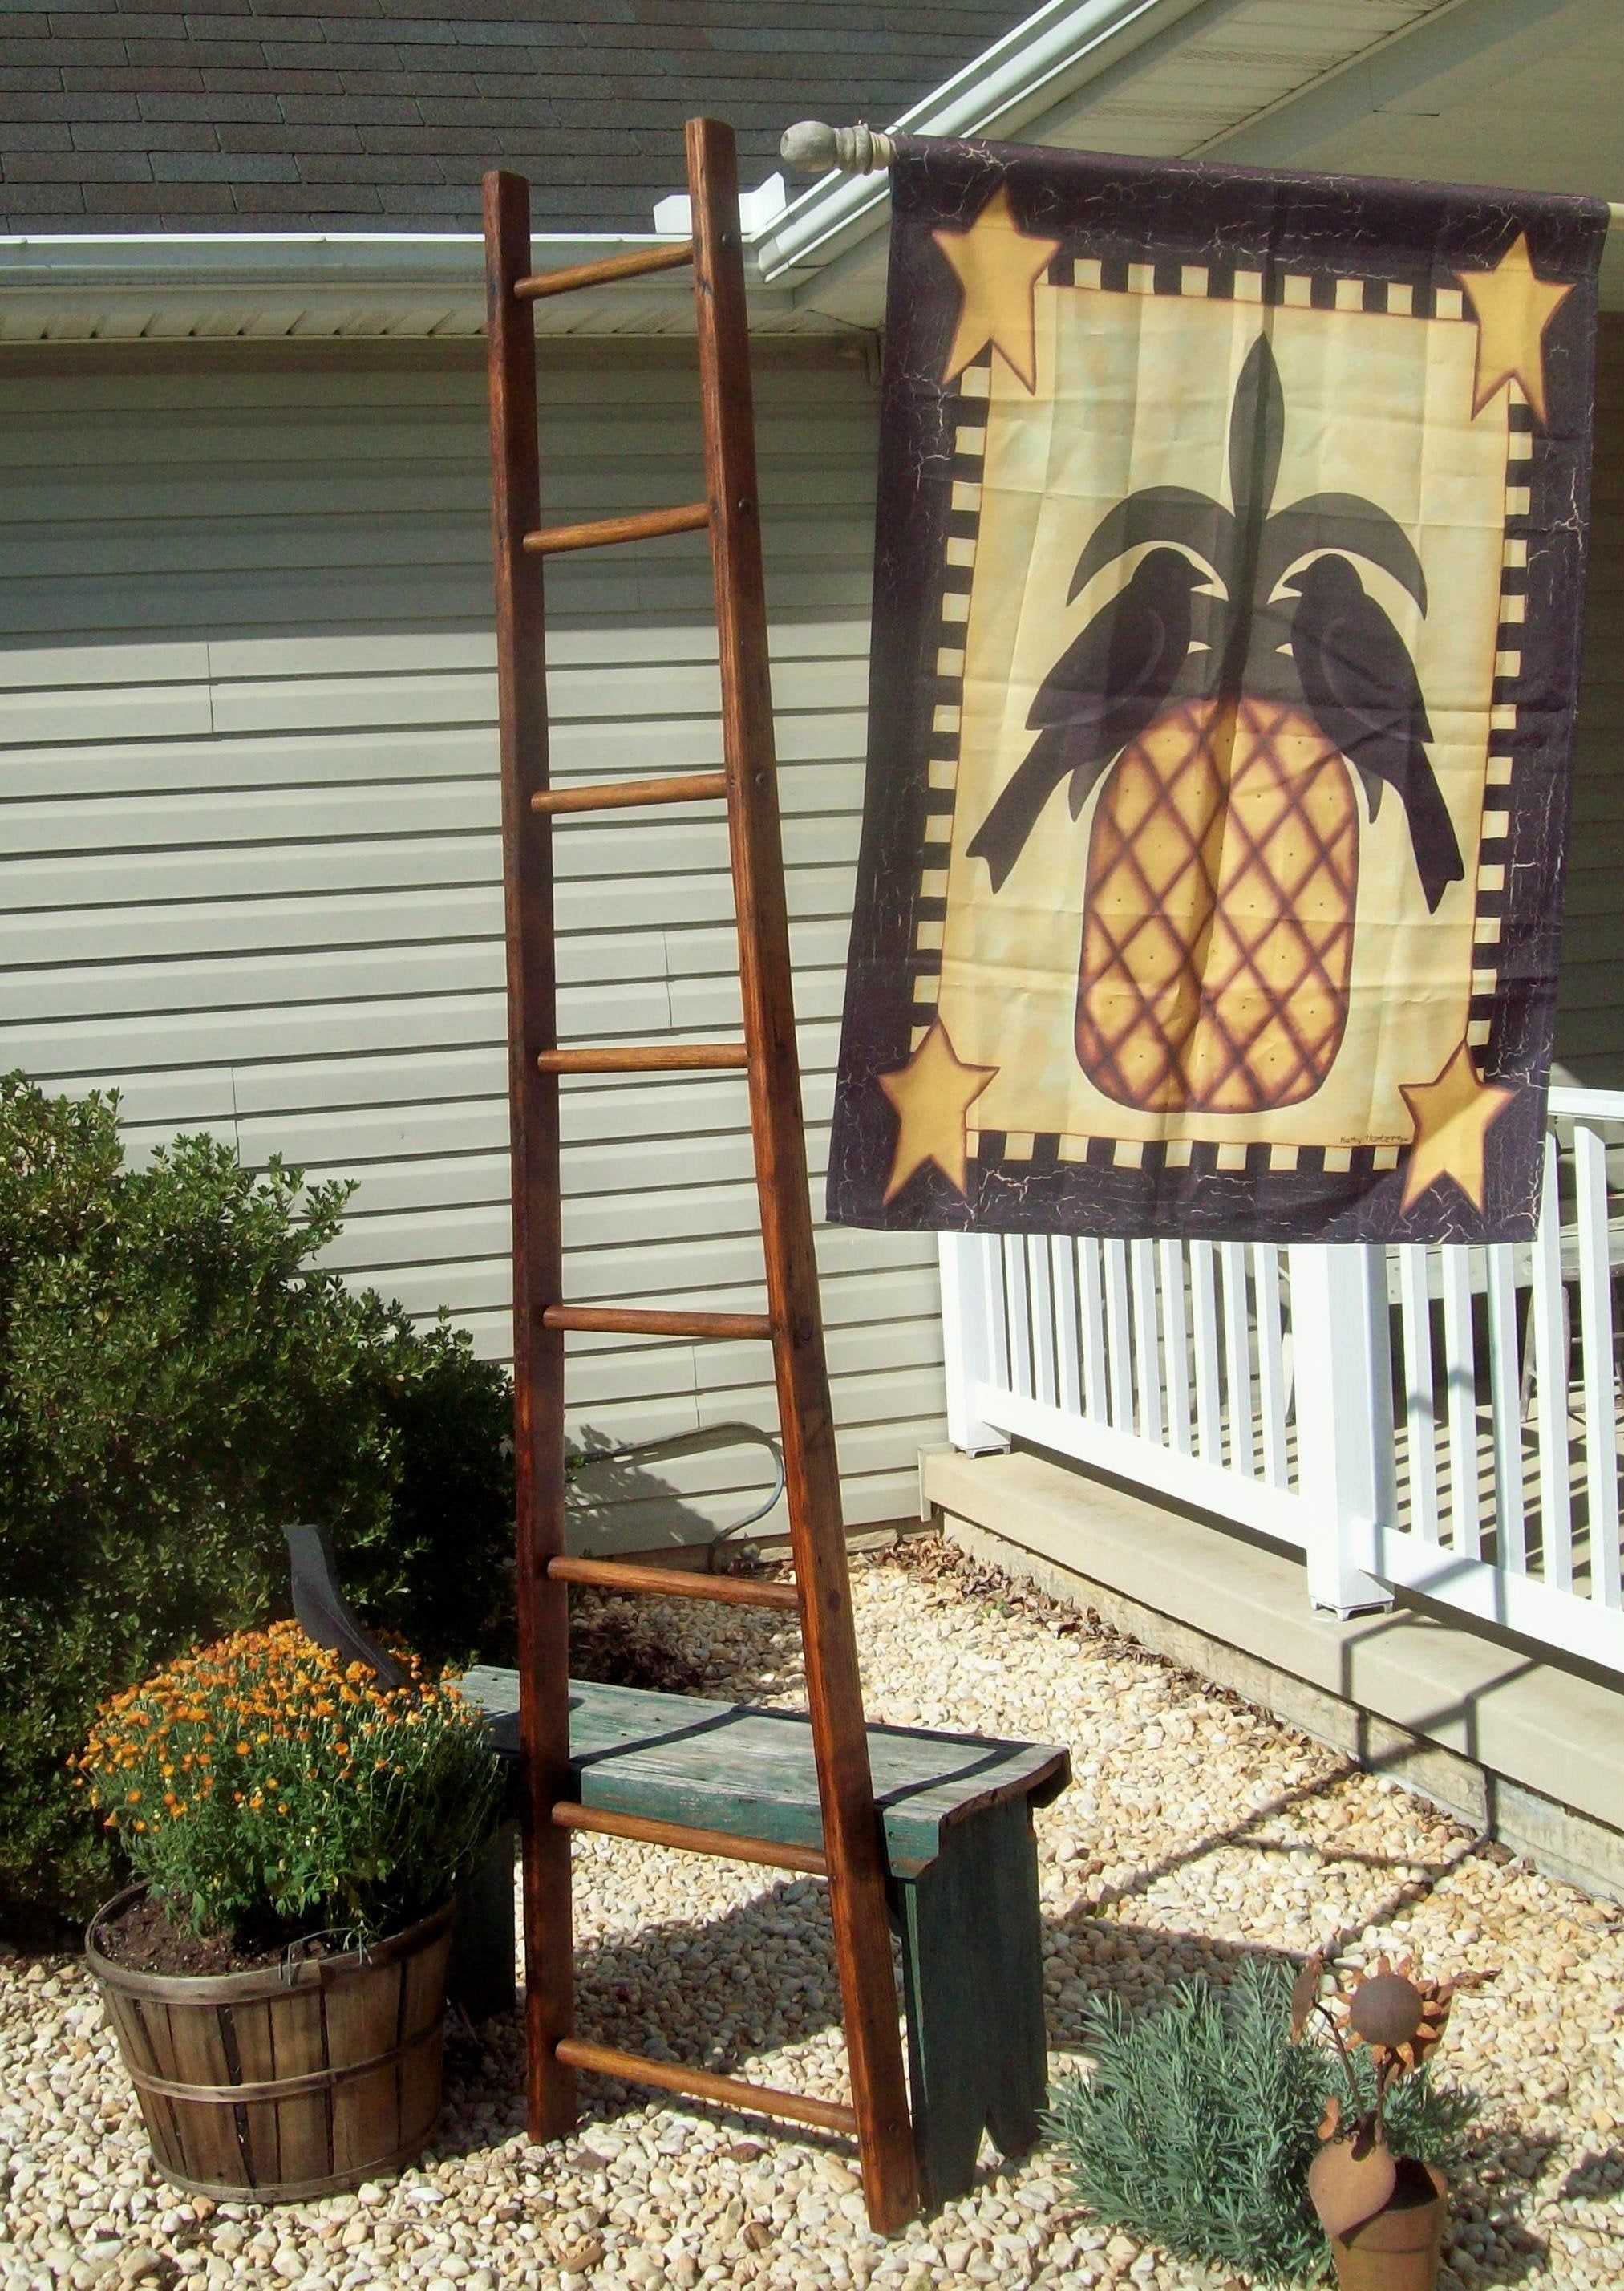 Authentic Orchard Ladders Refinished Or As Is 7 Ft To 9 Ft Puffy Buttons Square Rungs By Treasuresbybetsy On Etsy Ladder Antiques For Sale Vintage Ladder